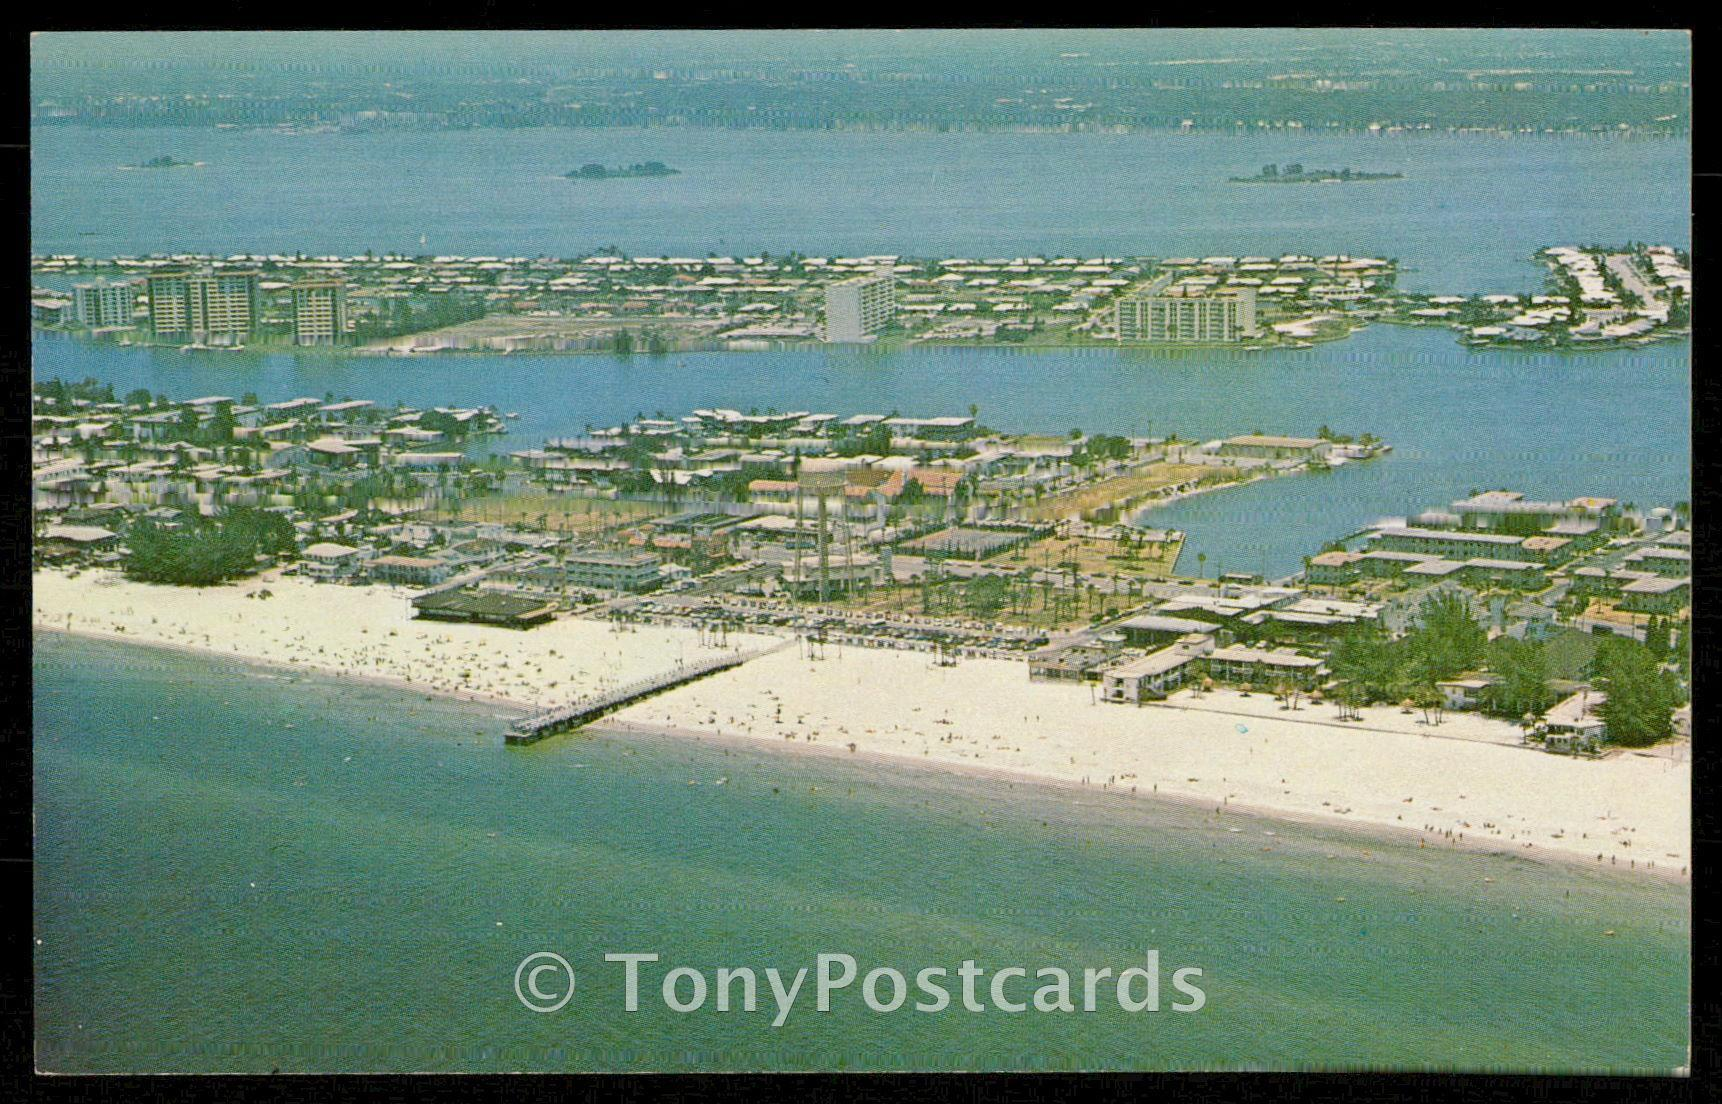 clearwater history essay Art history tutors near me in clearwater beach, fl 1-1 tutoring lessons from experts in art history art history tutoring in clearwater beach, fl - on demand.